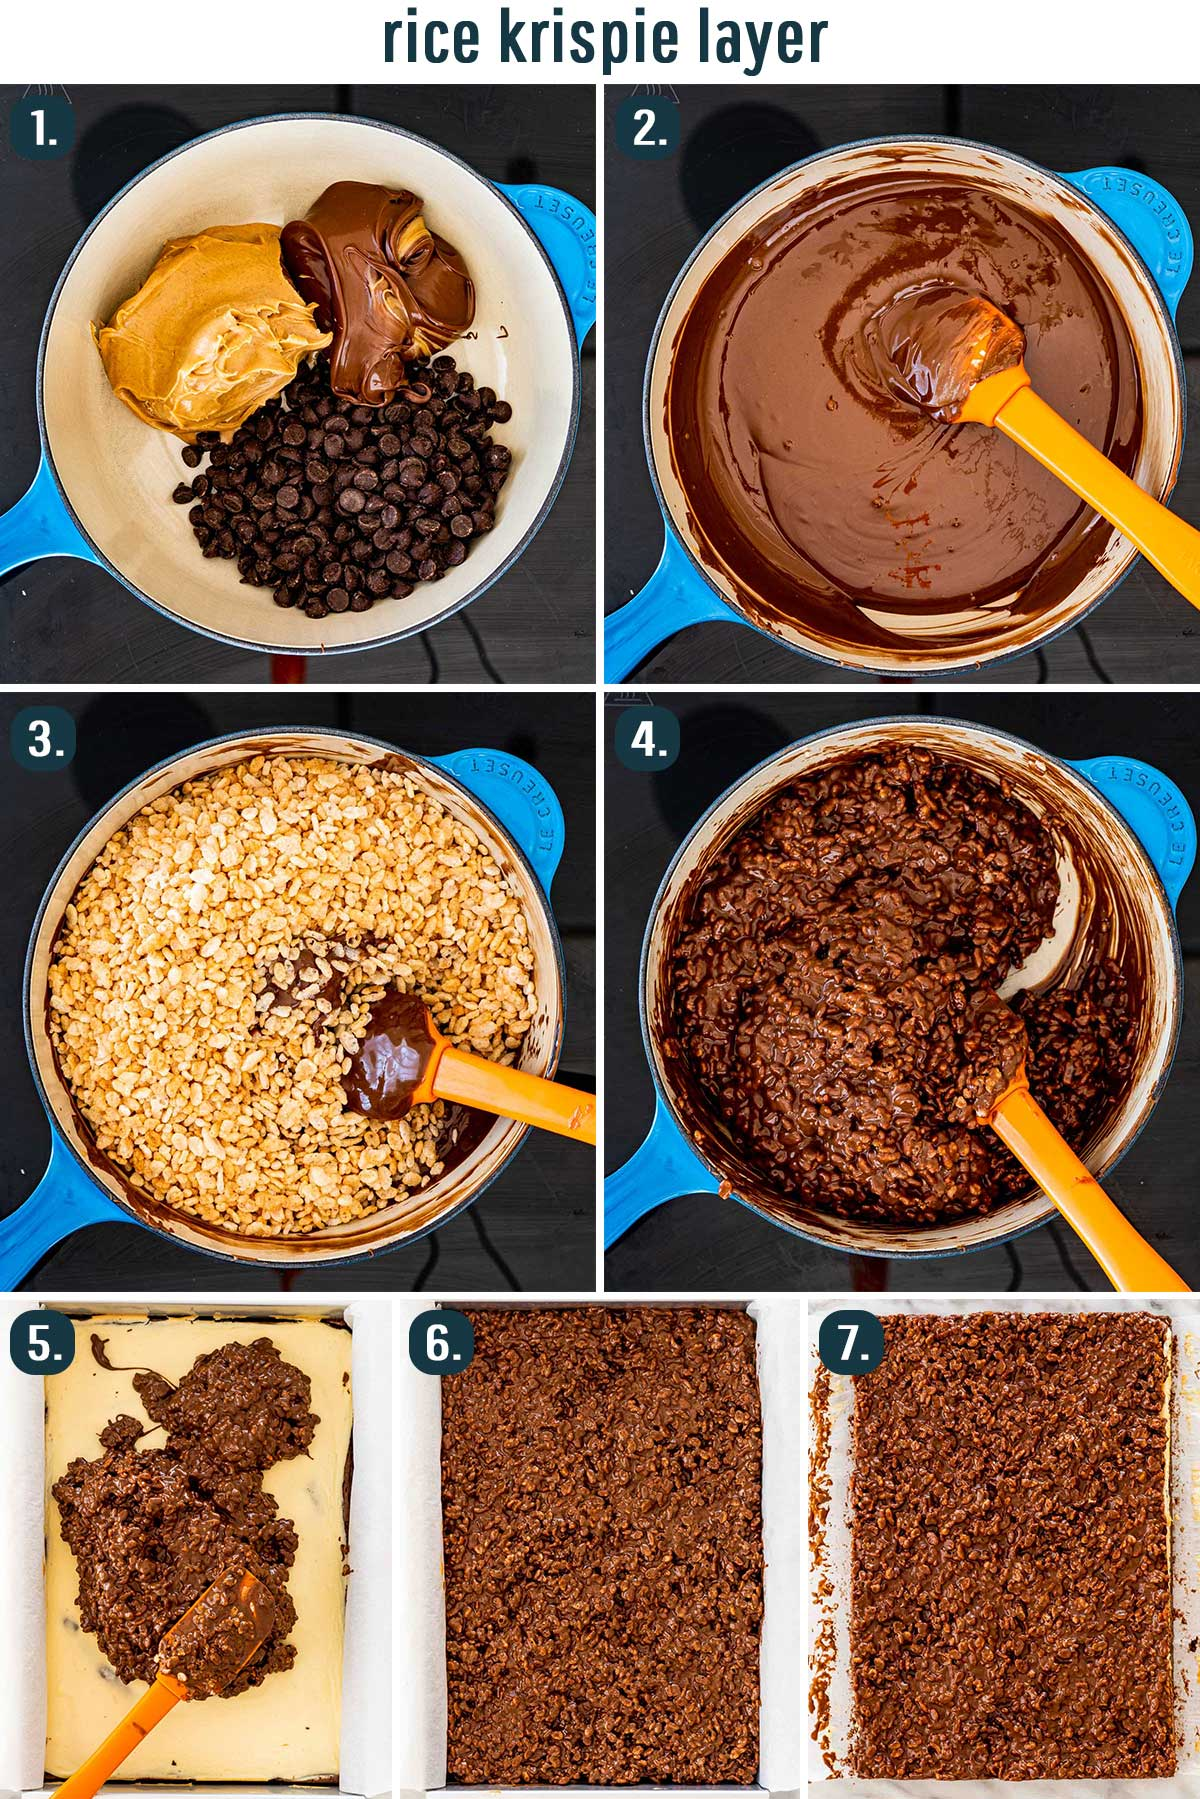 process shots showing how to make the rice krispie layer for brownies